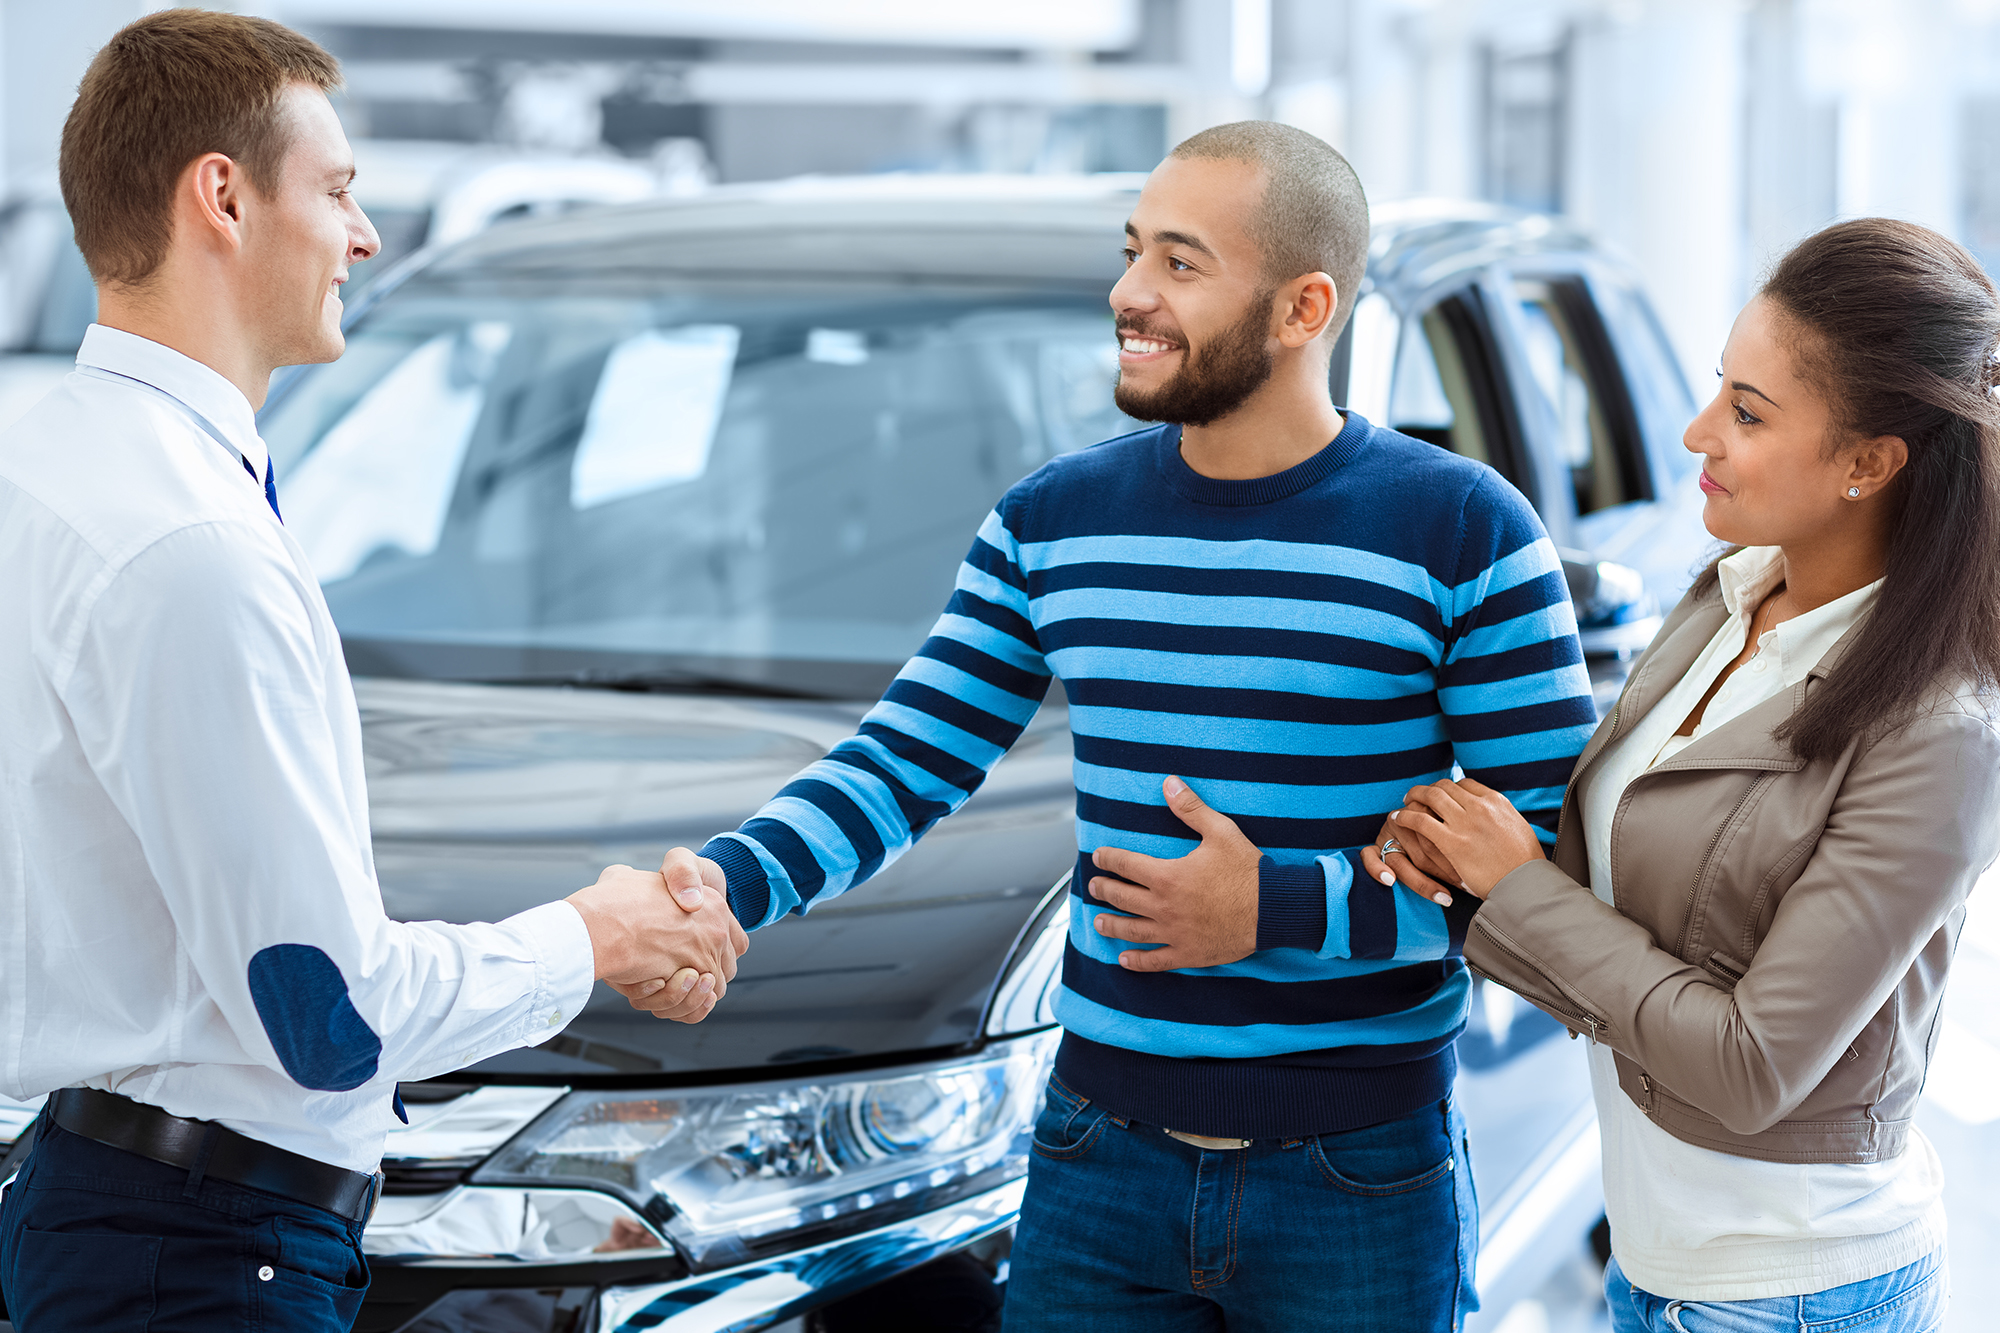 Happy couple shaking hands with a salesman. (Image: Shutterstock)